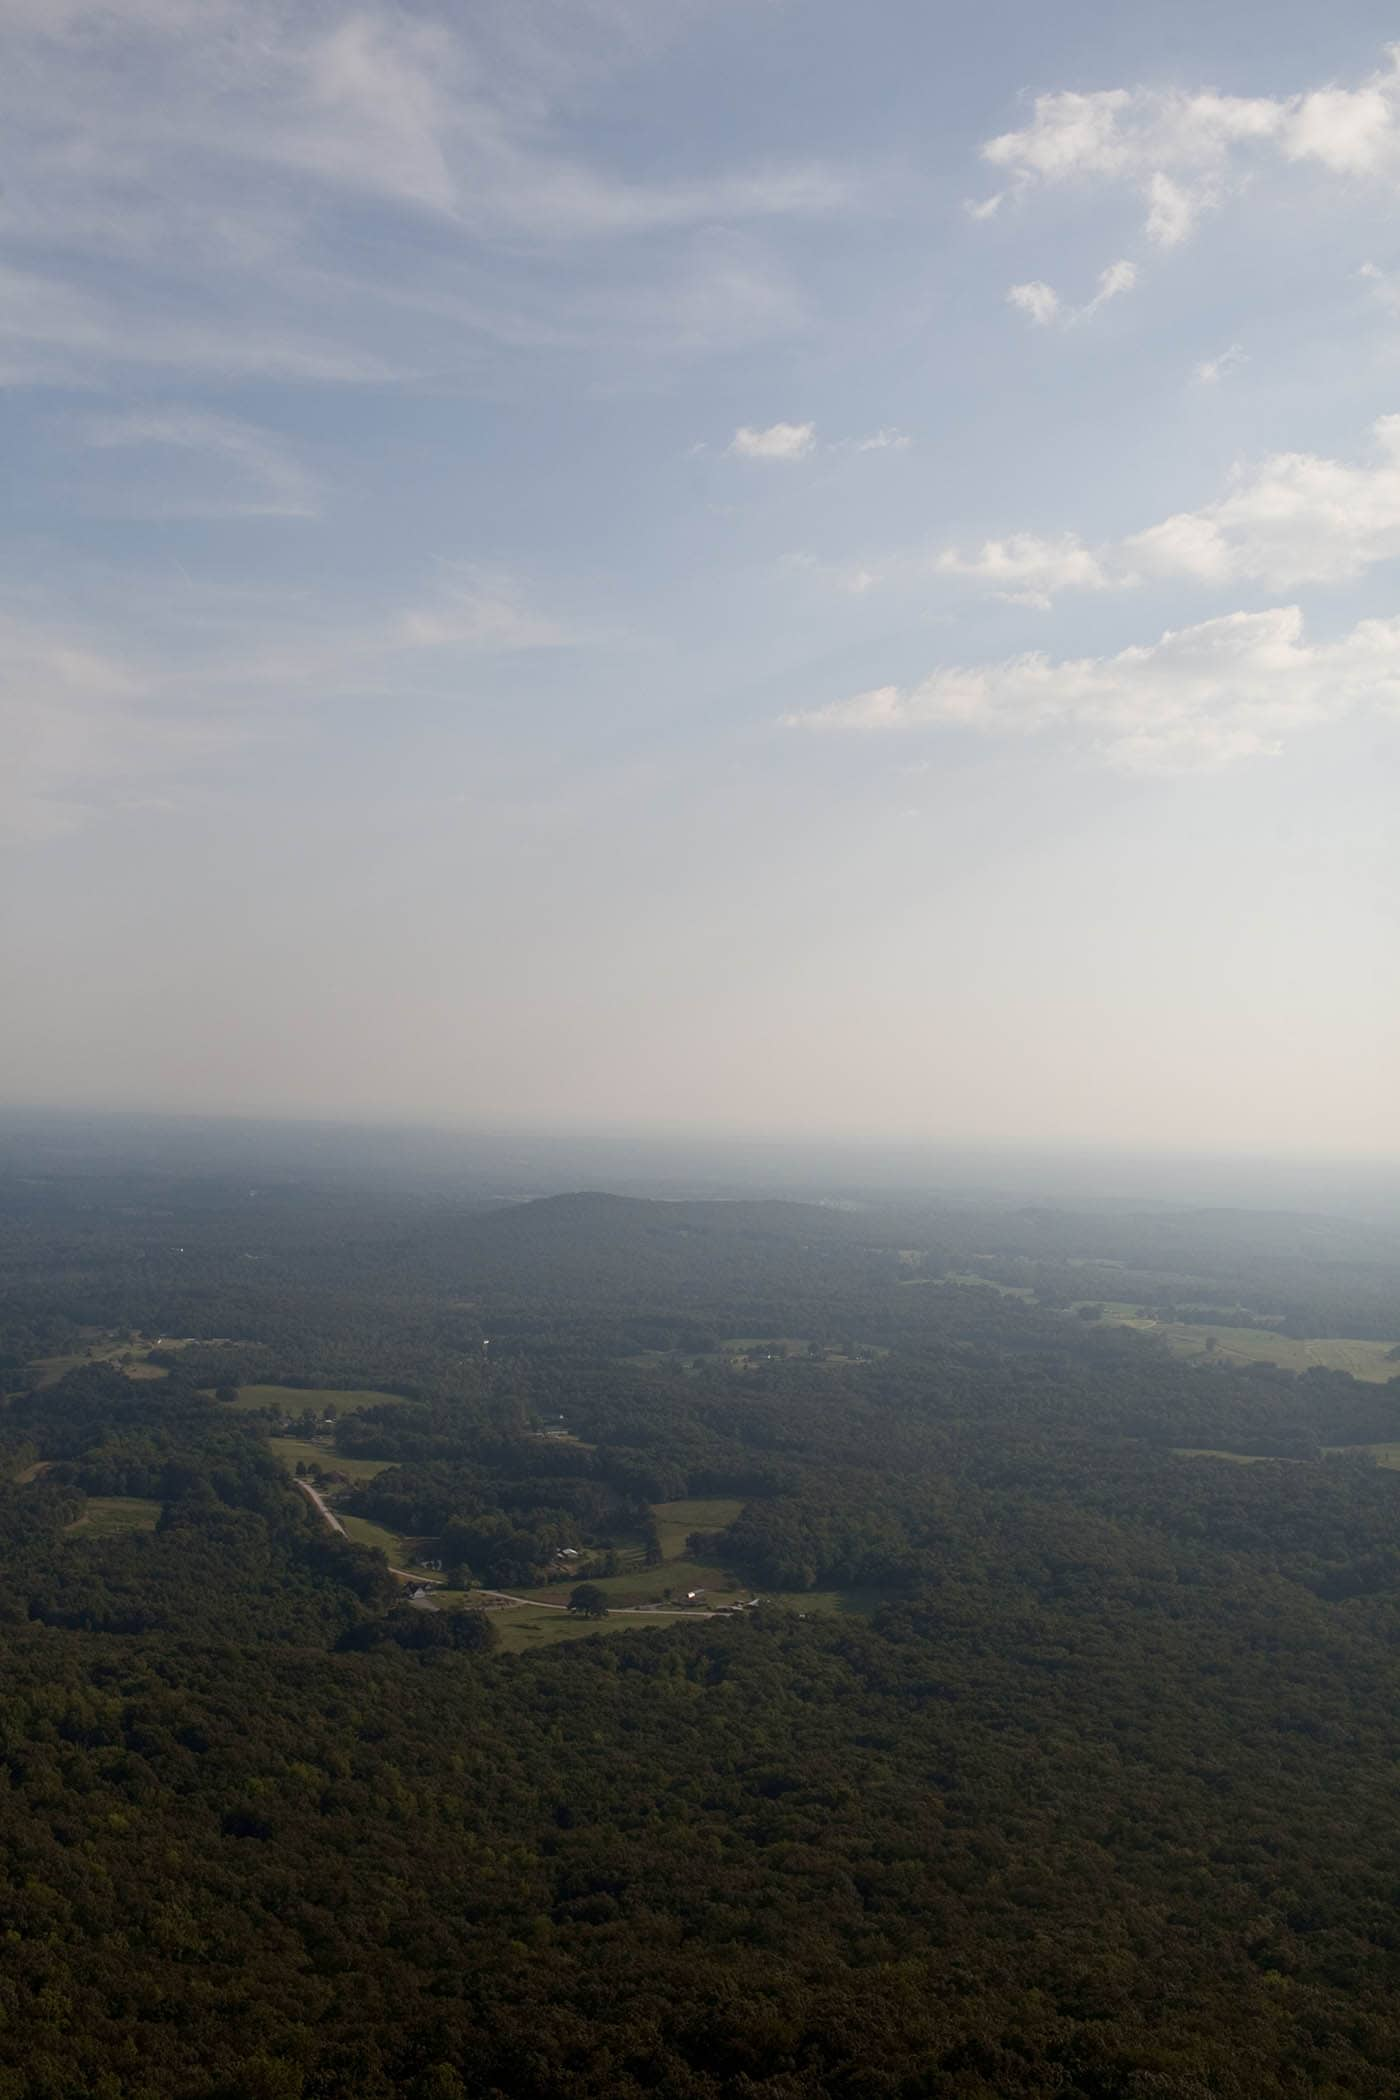 View from the mountains in North Carolina